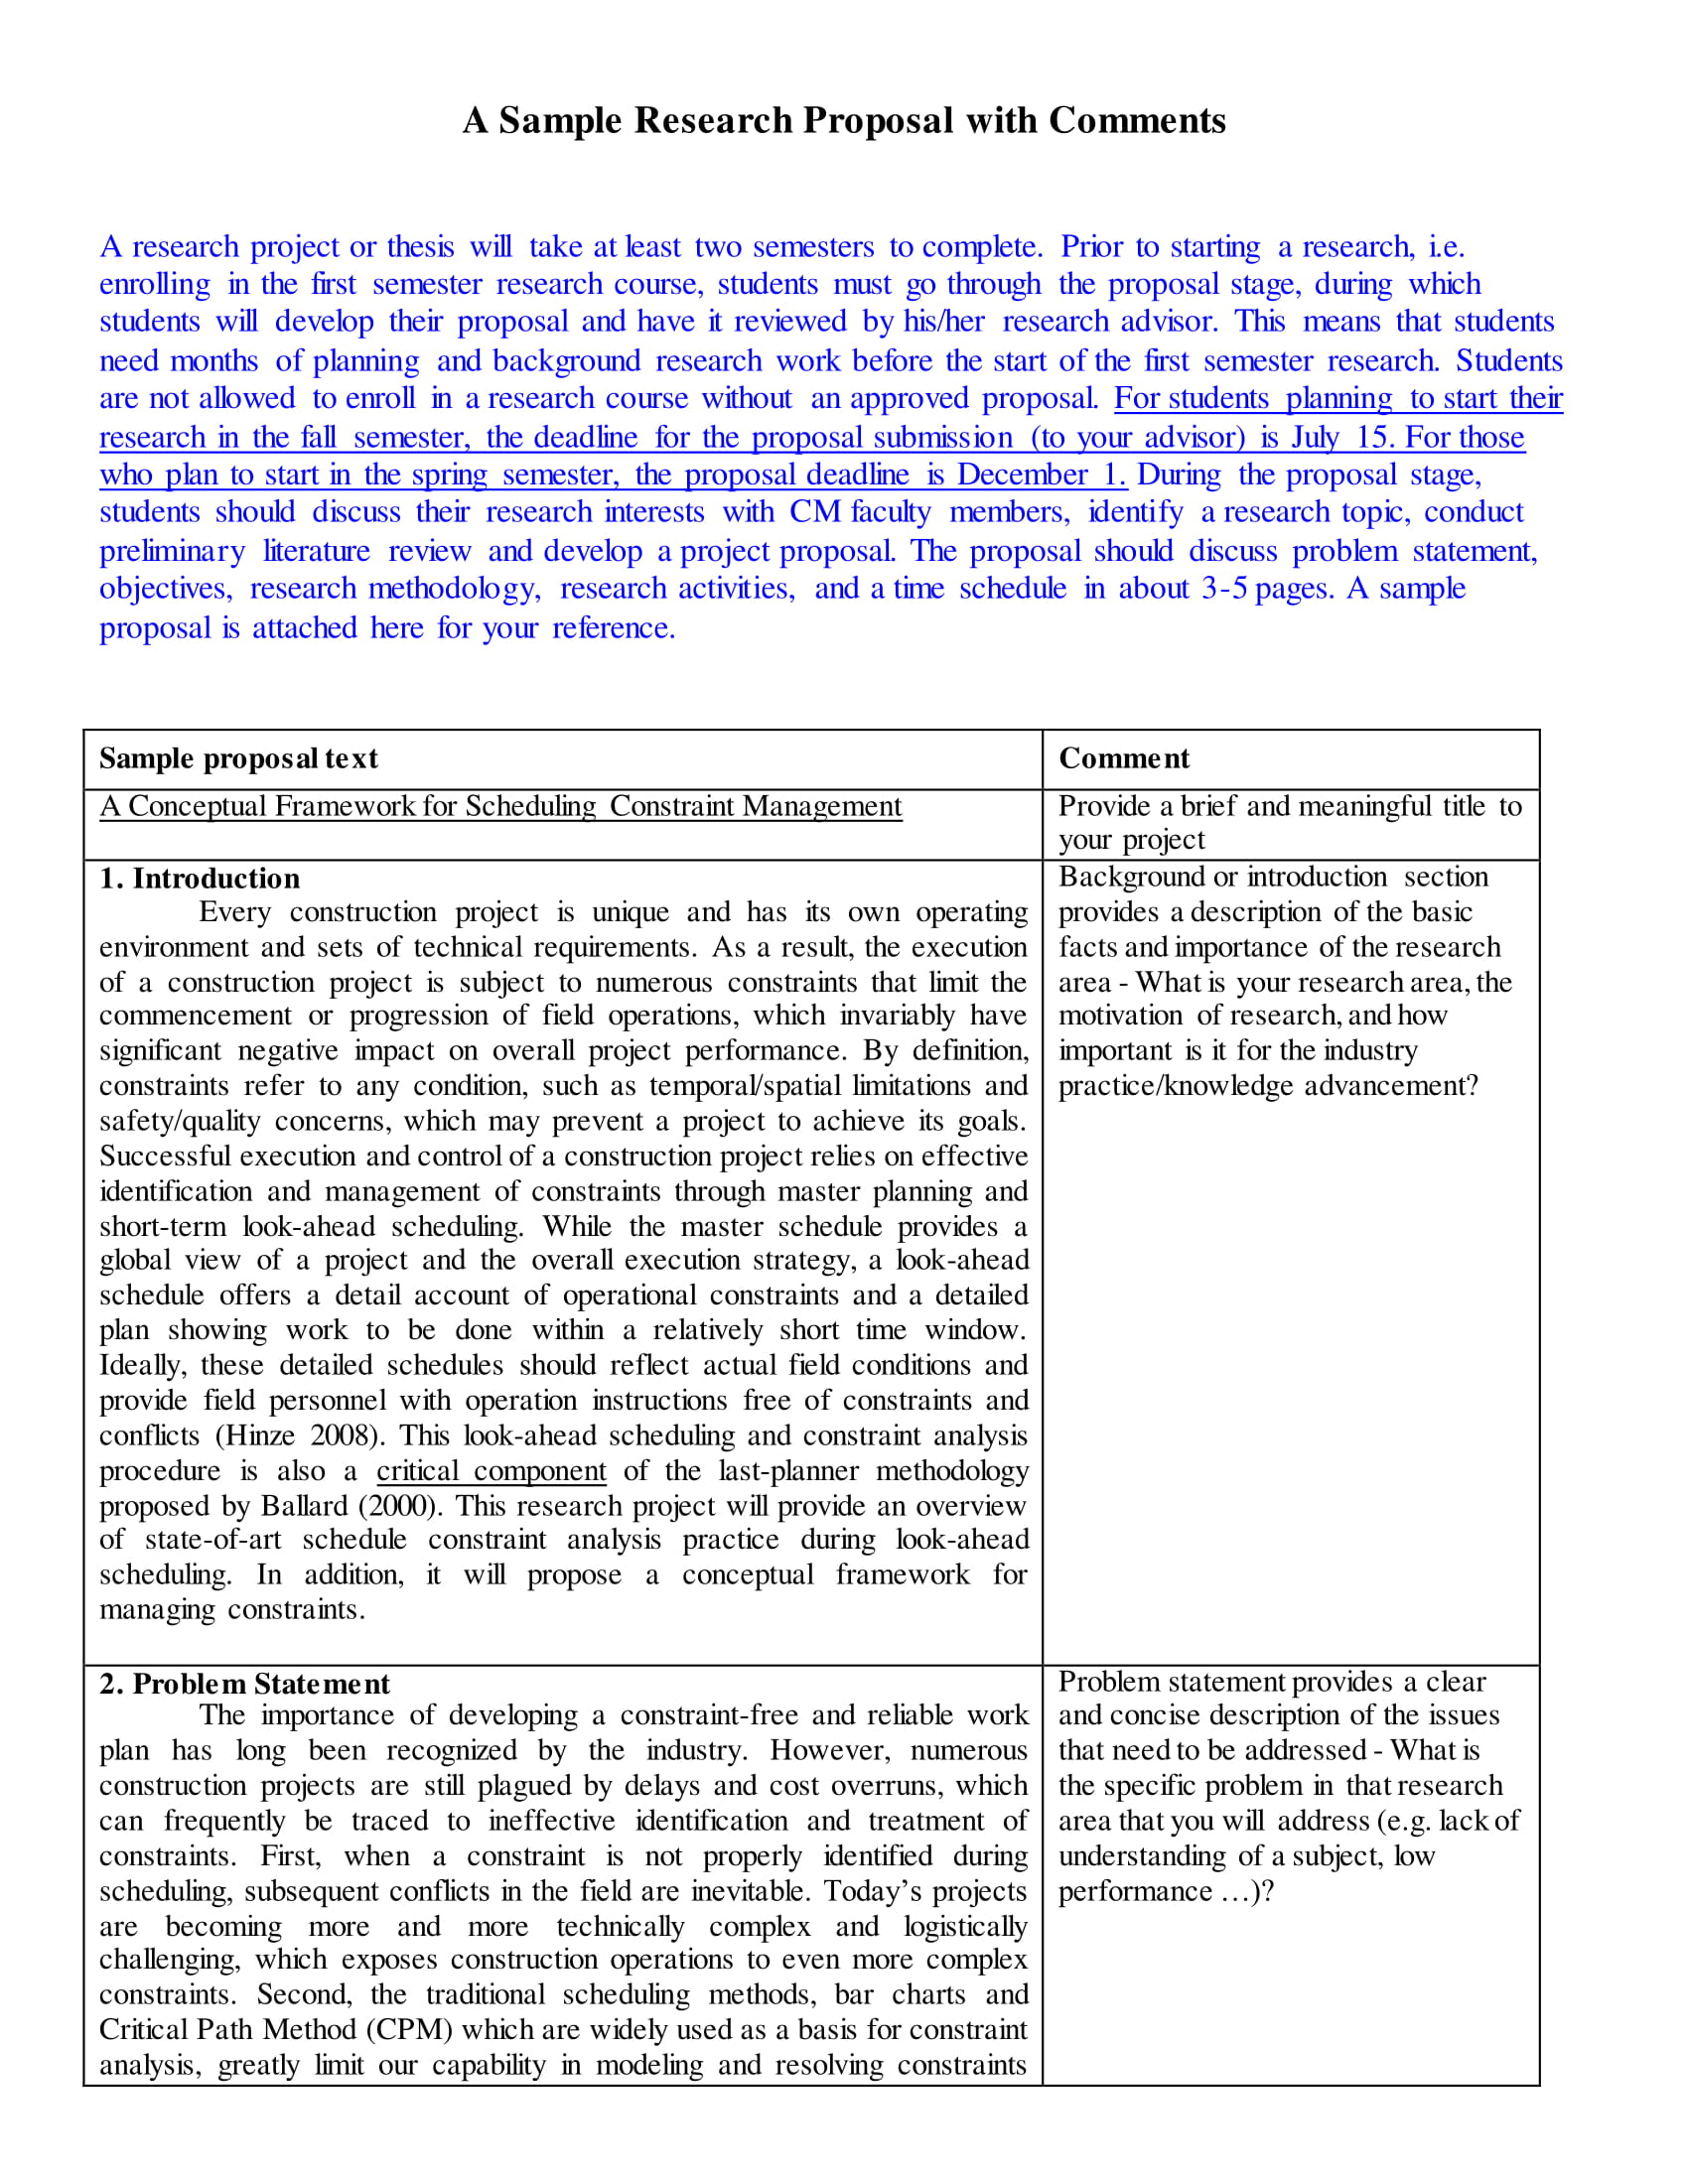 research proposal with comments example 1